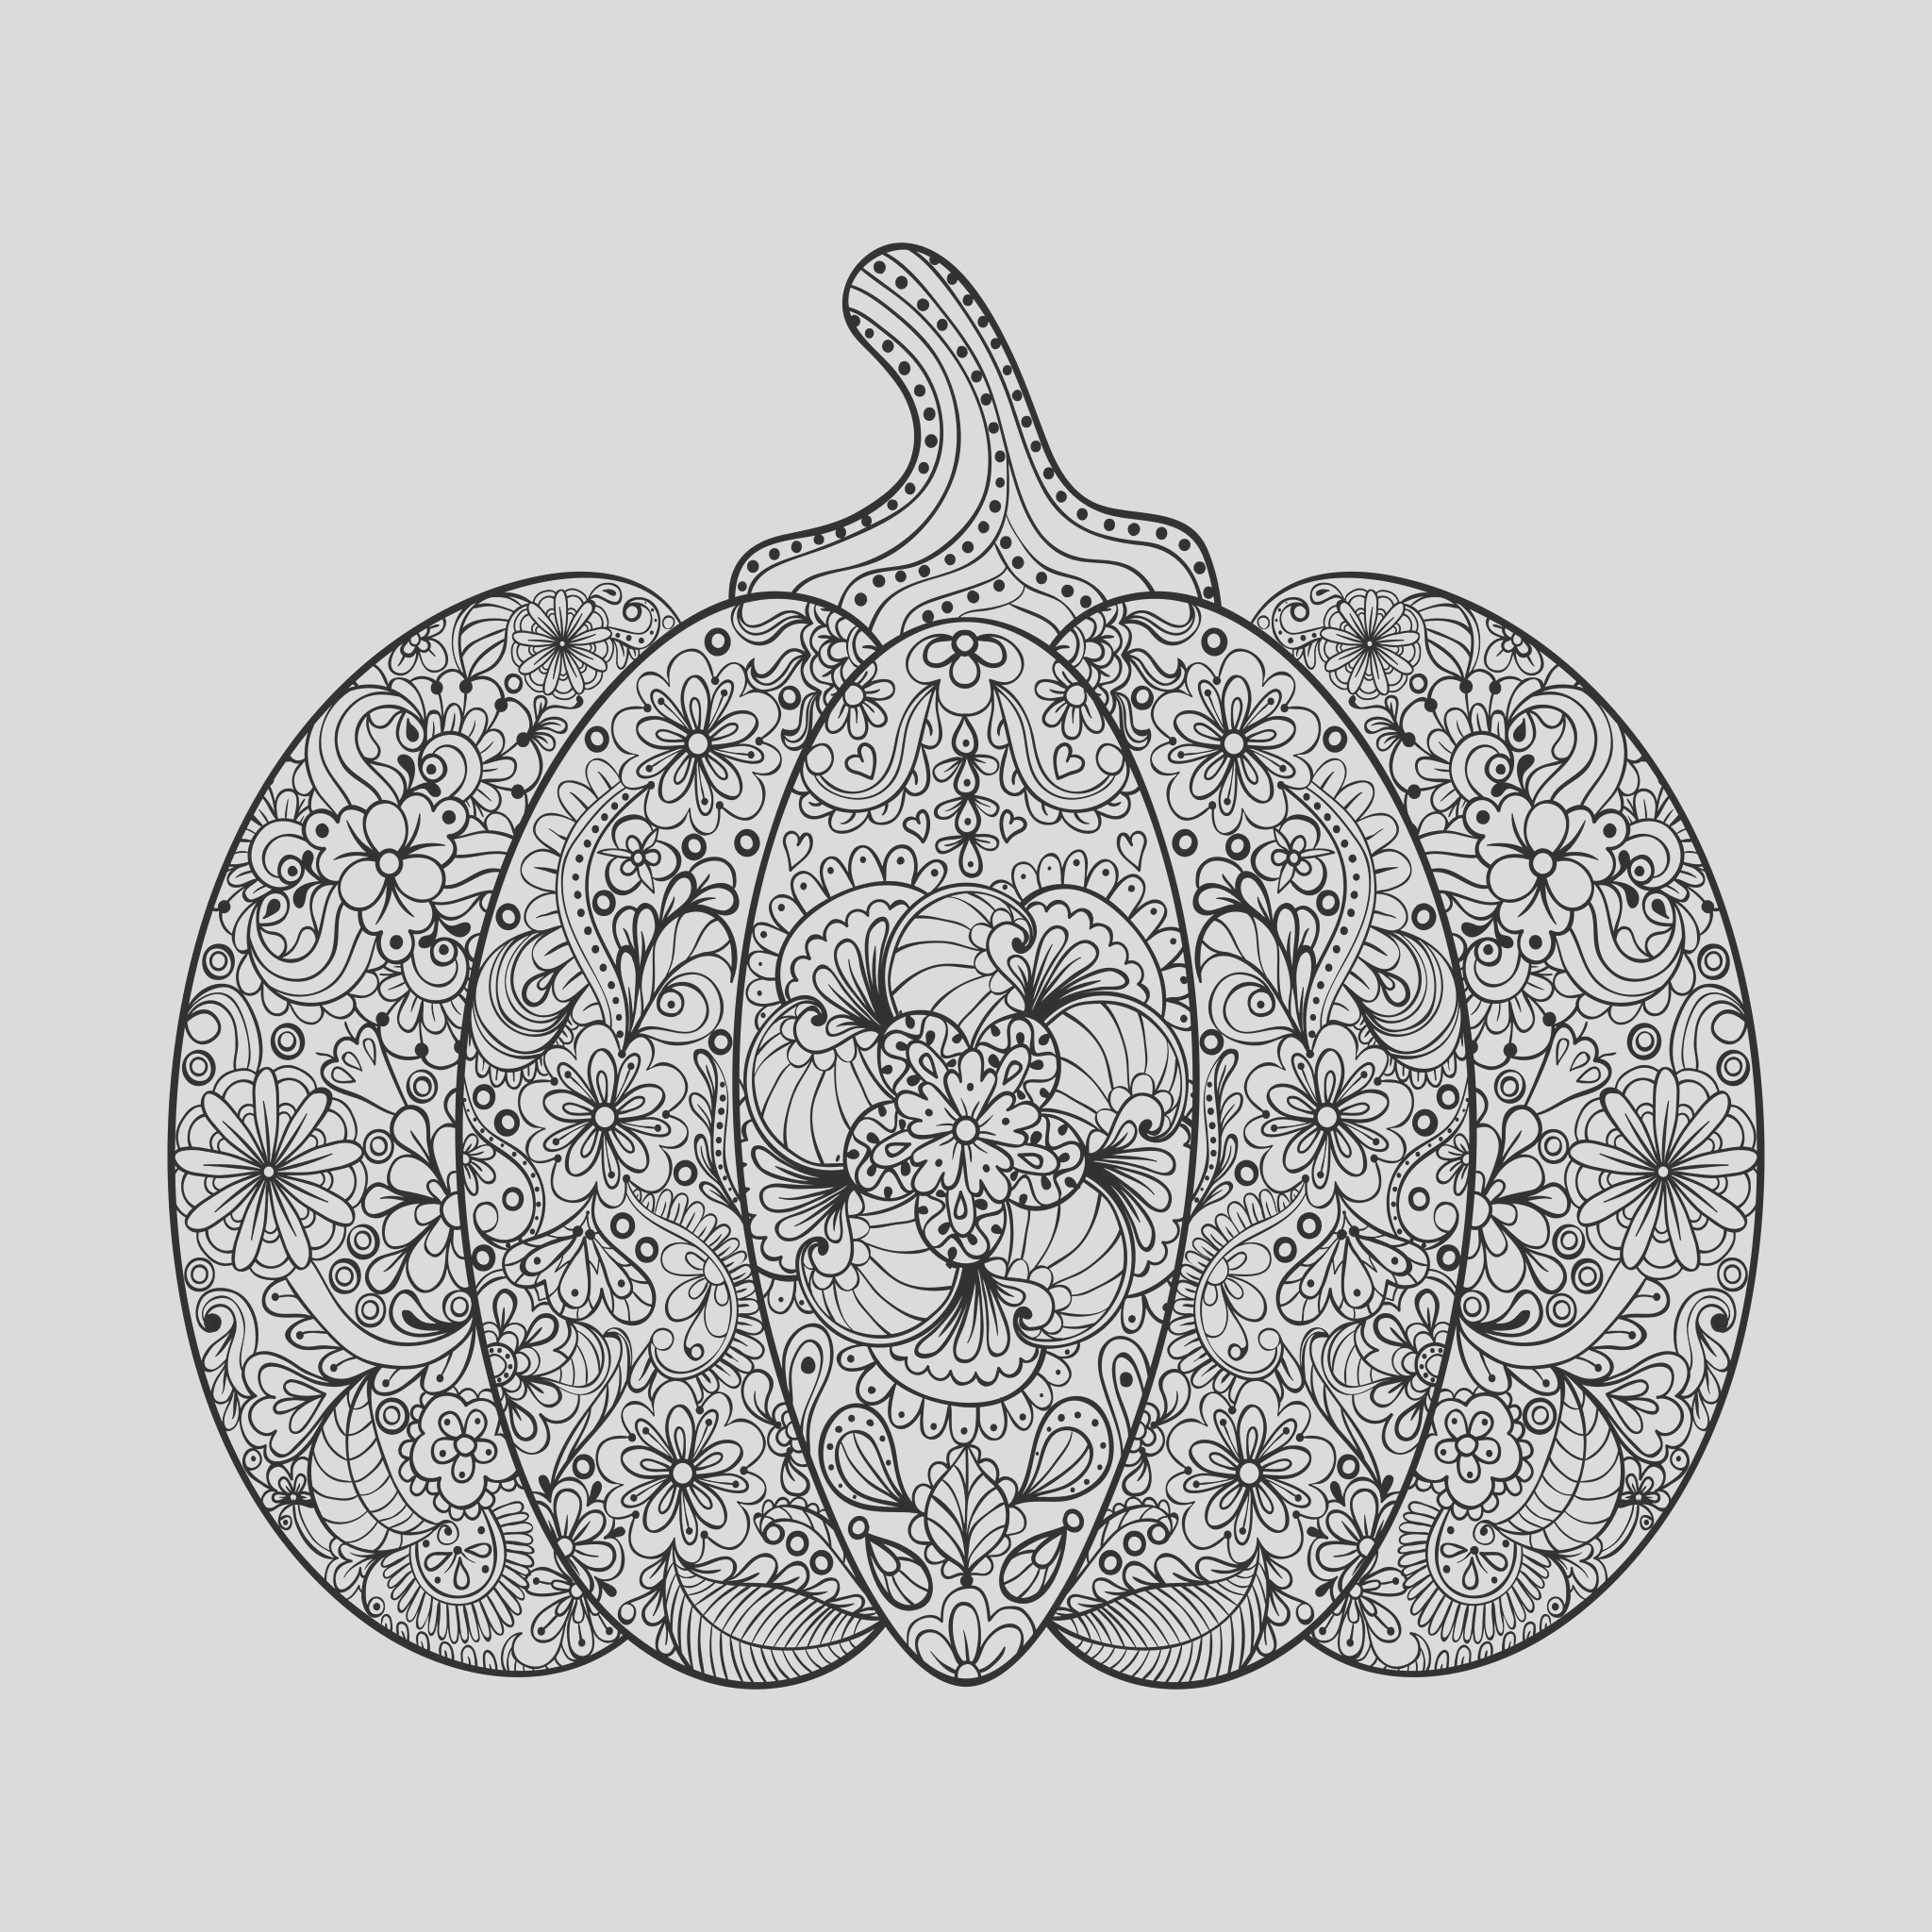 halloween adult coloring pages image=events halloween coloring halloween plex pumpkin with flowers and leaves by ipanki 1